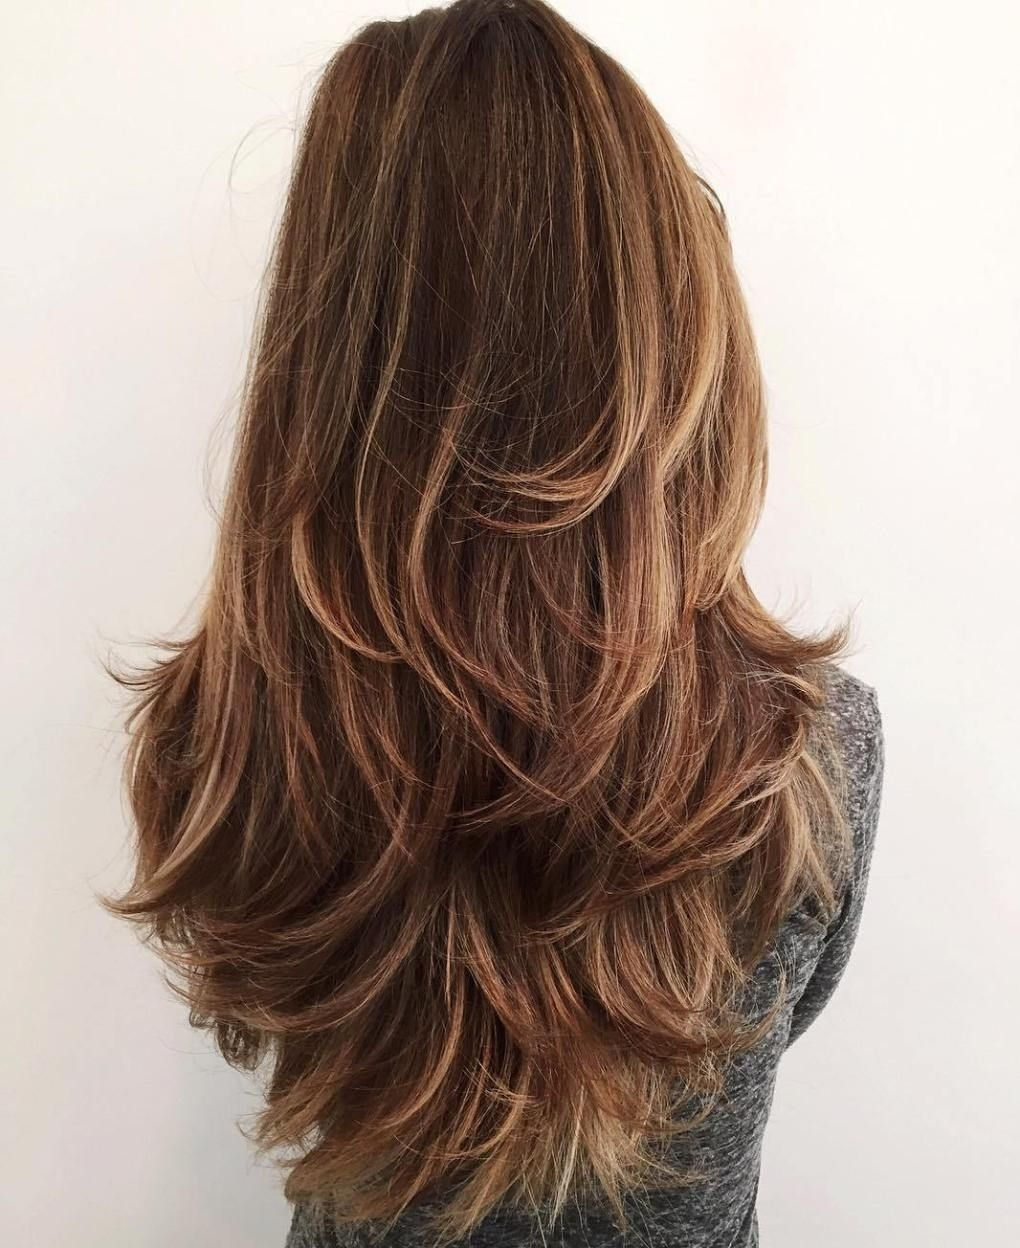 50 Lovely Long Shag Haircuts For Effortless Stylish Looks   Hair intended for Haircut For Thick Hair Long